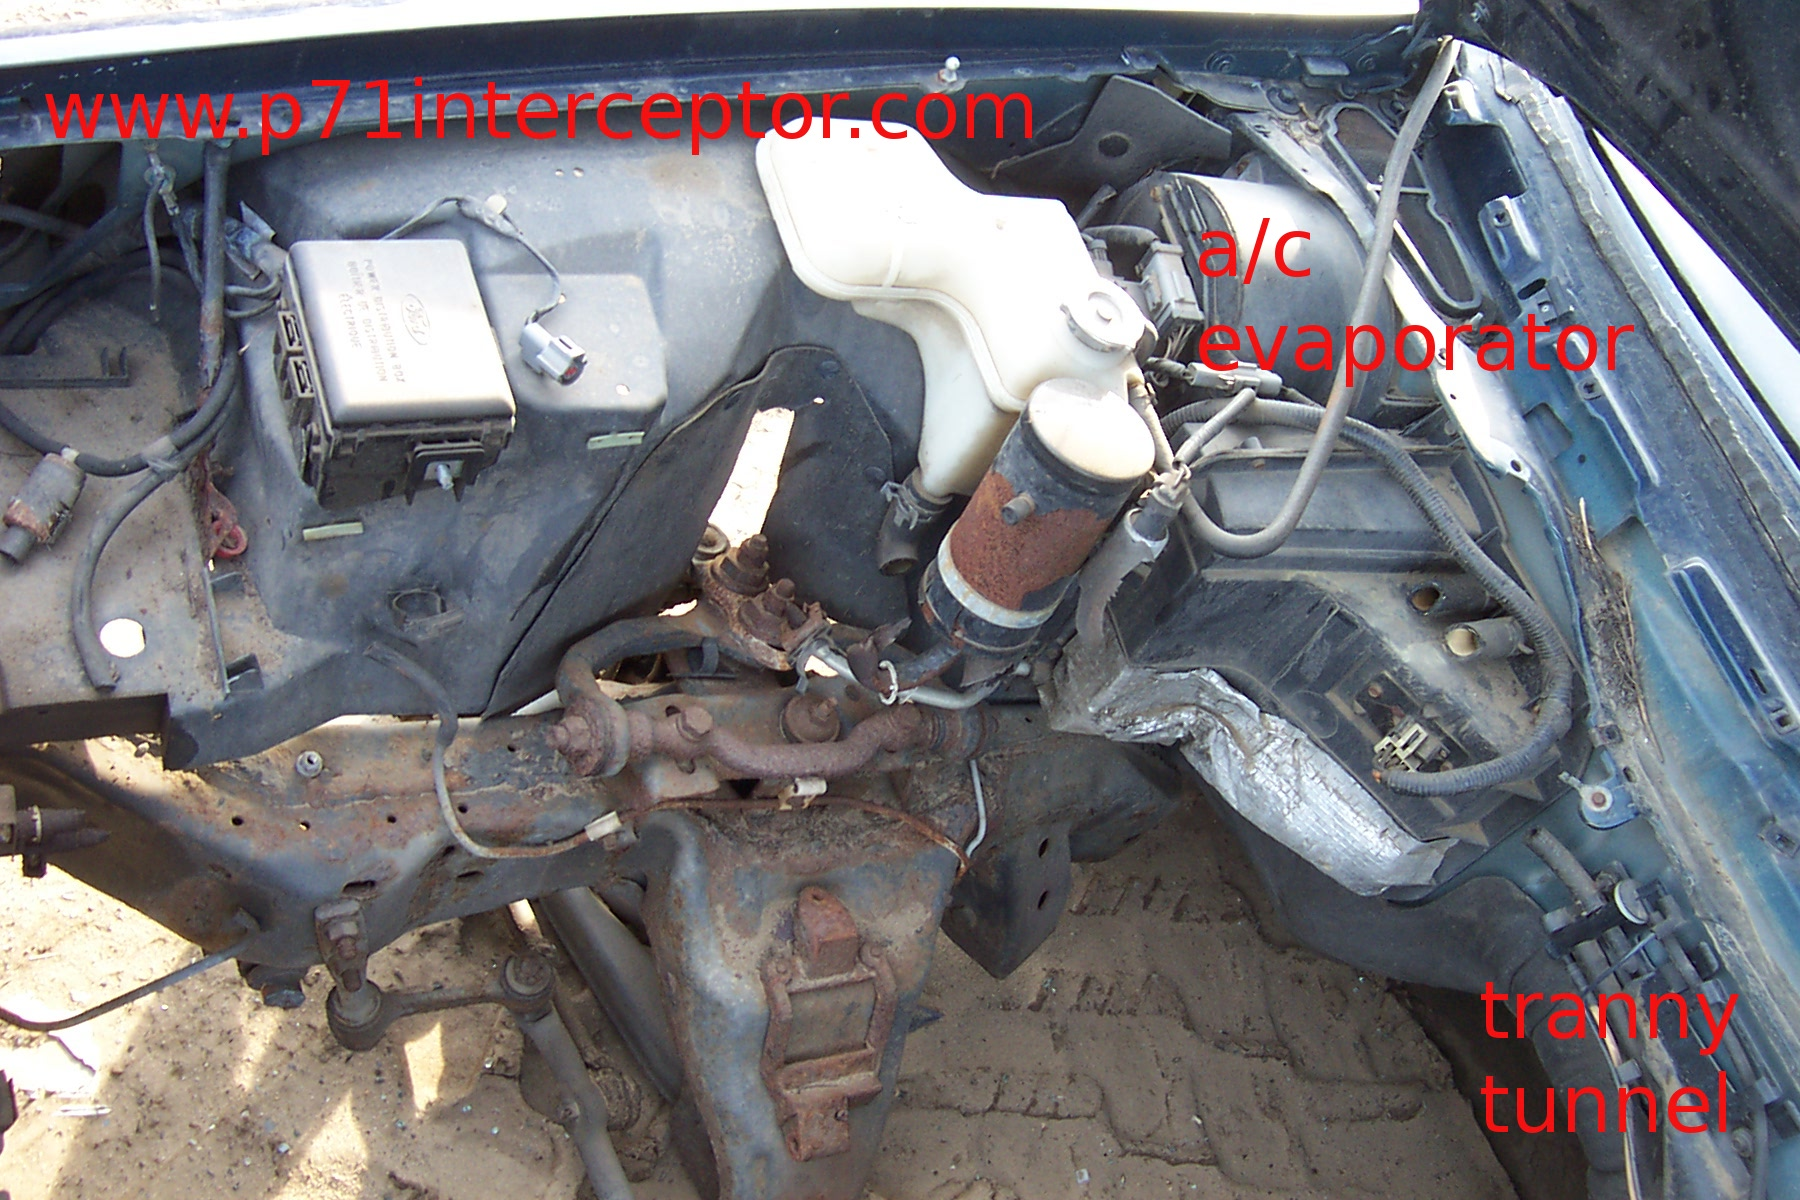 1999 Crown Vic Frame Diagram Wiring 2004 Mercury Grand Marquis Engine Ford Victoria Motor Mounts Specs